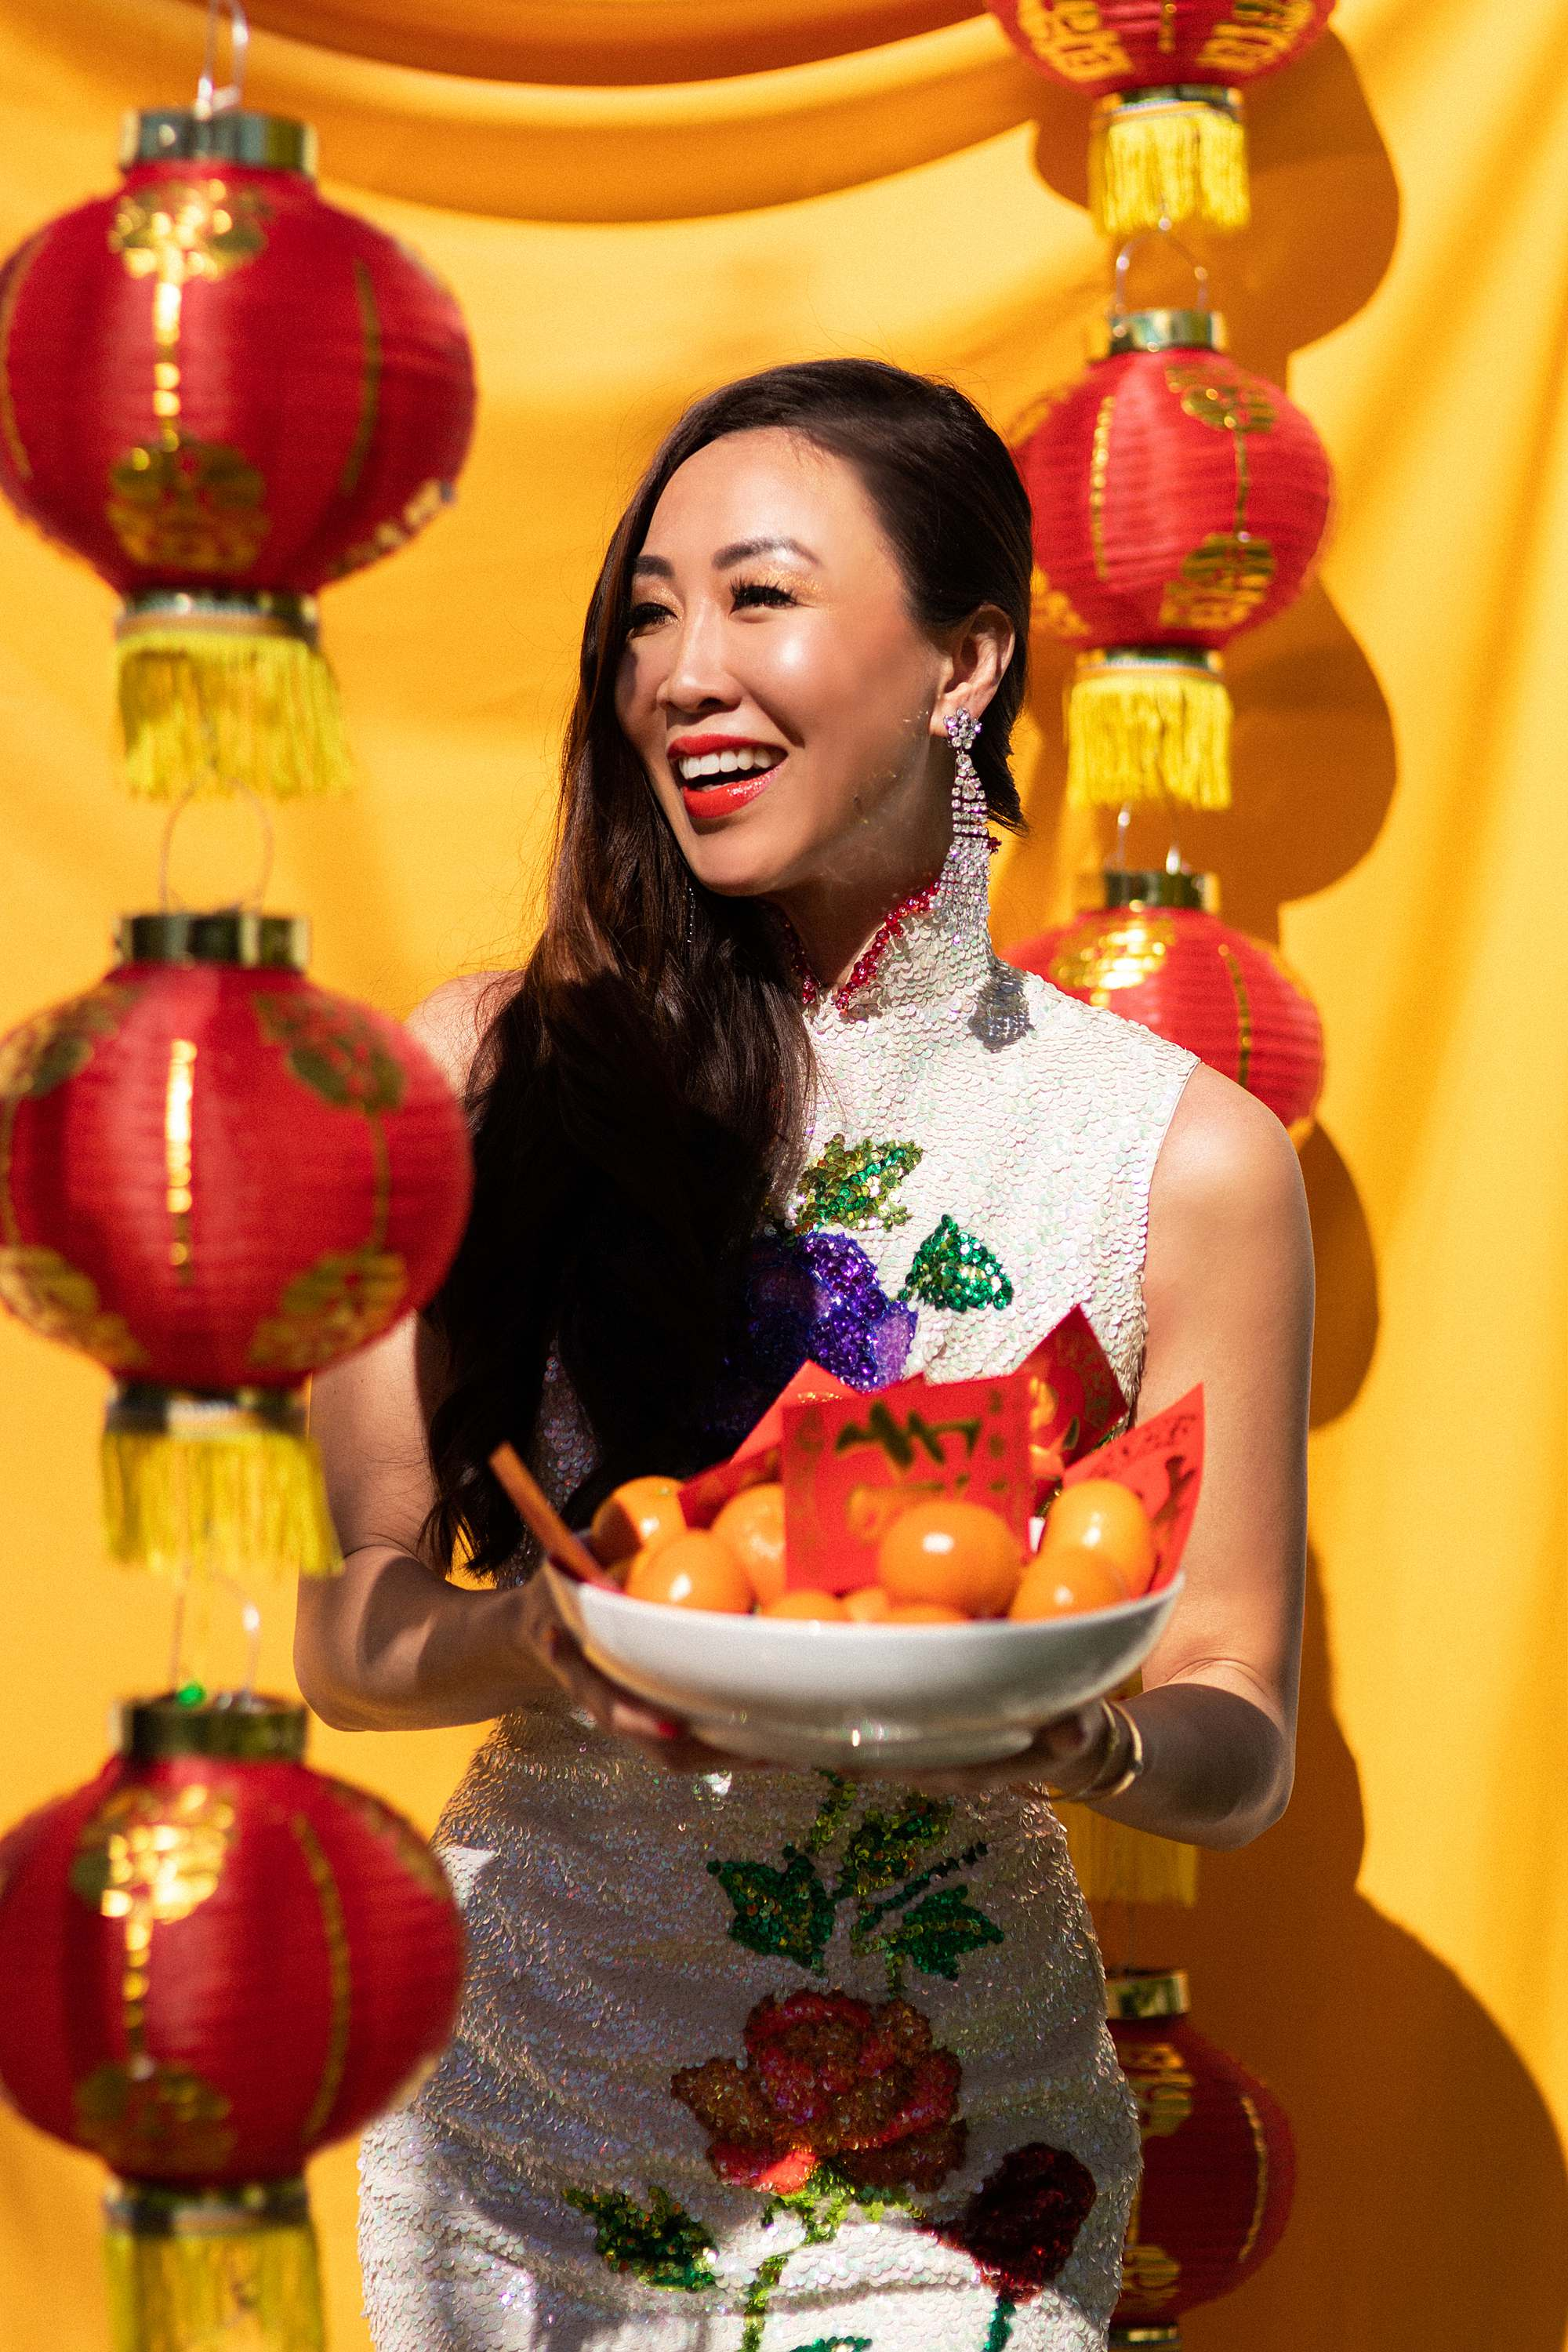 Chinese New Year lunar new year outfit and festivities - growing up Asian American blog post - DianaElizabethblog.com // Chinese girl in traditional sequin Chinese dress